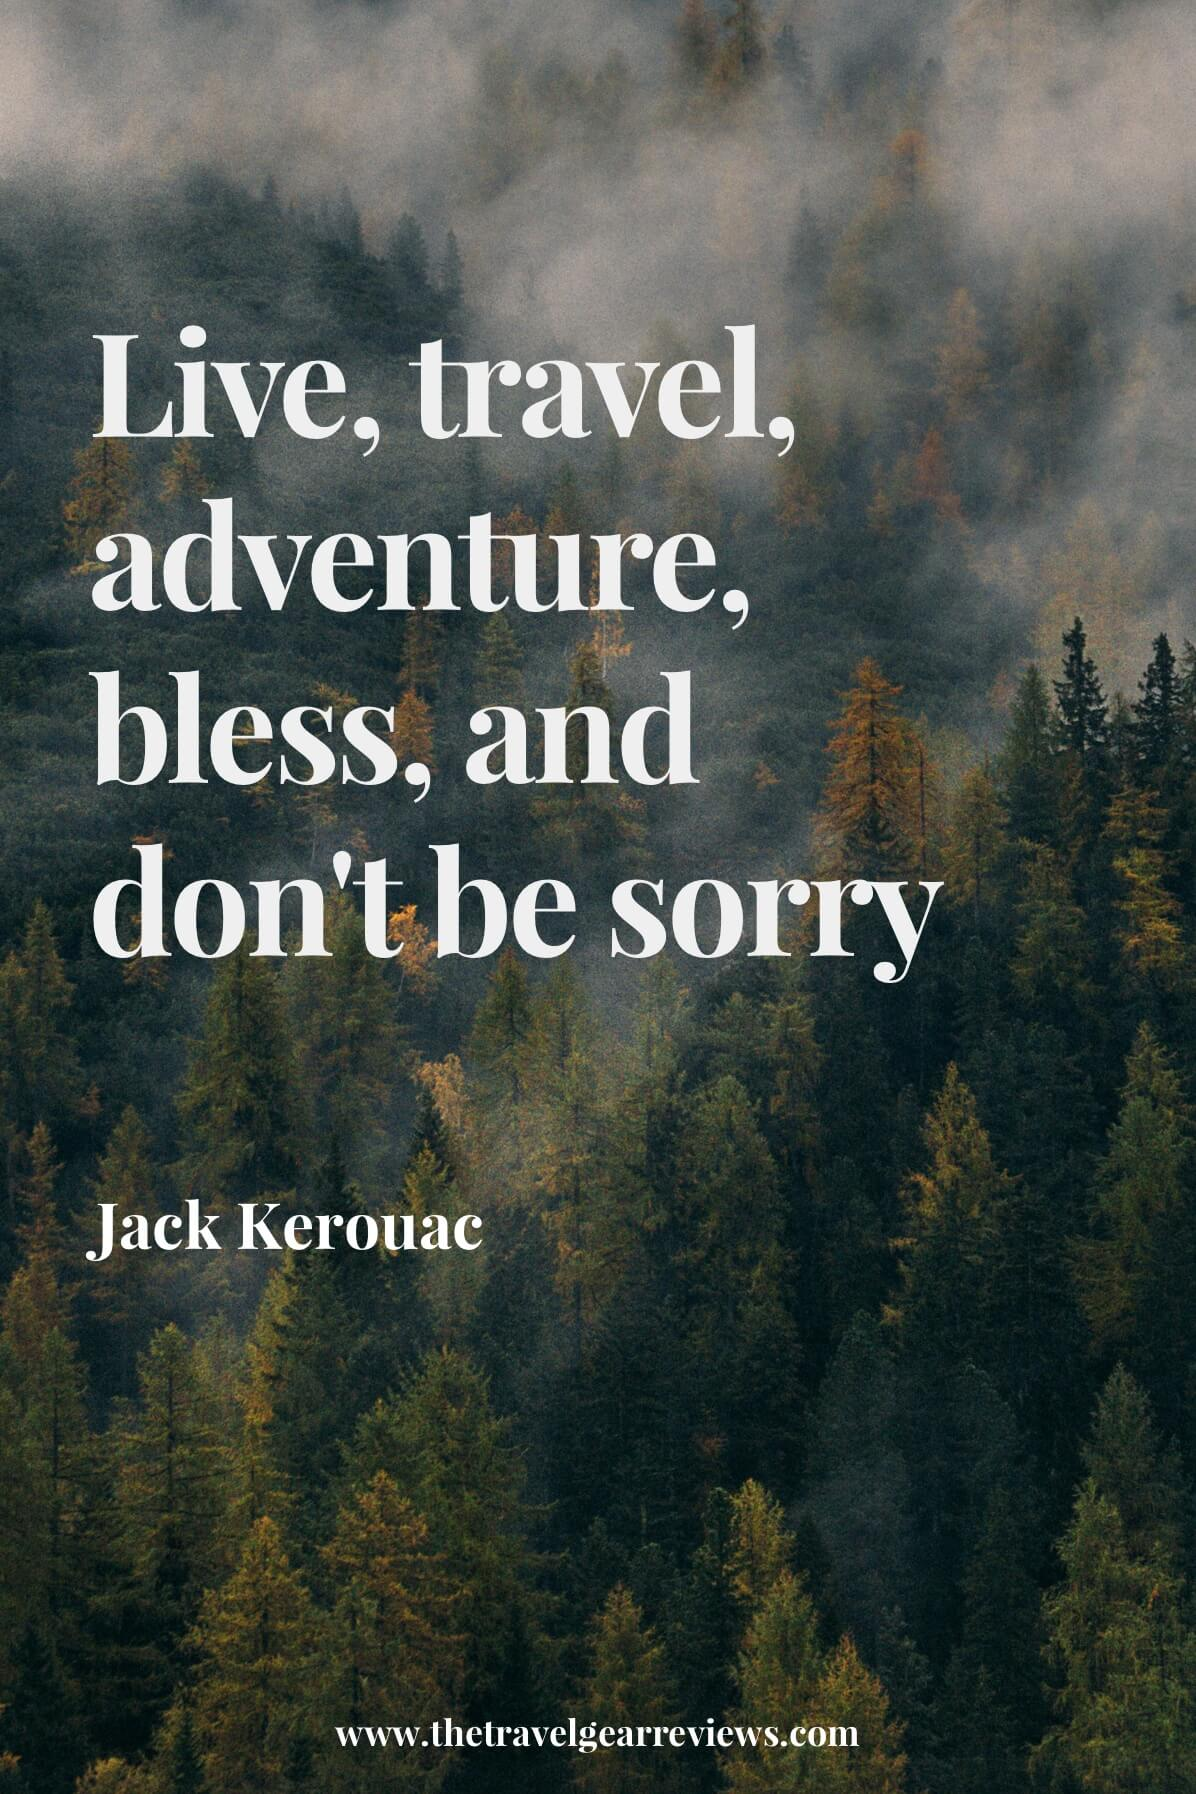 Live, travel, adventure, bless, and don't be sorry - Jack Kerouac. Best travel quotes